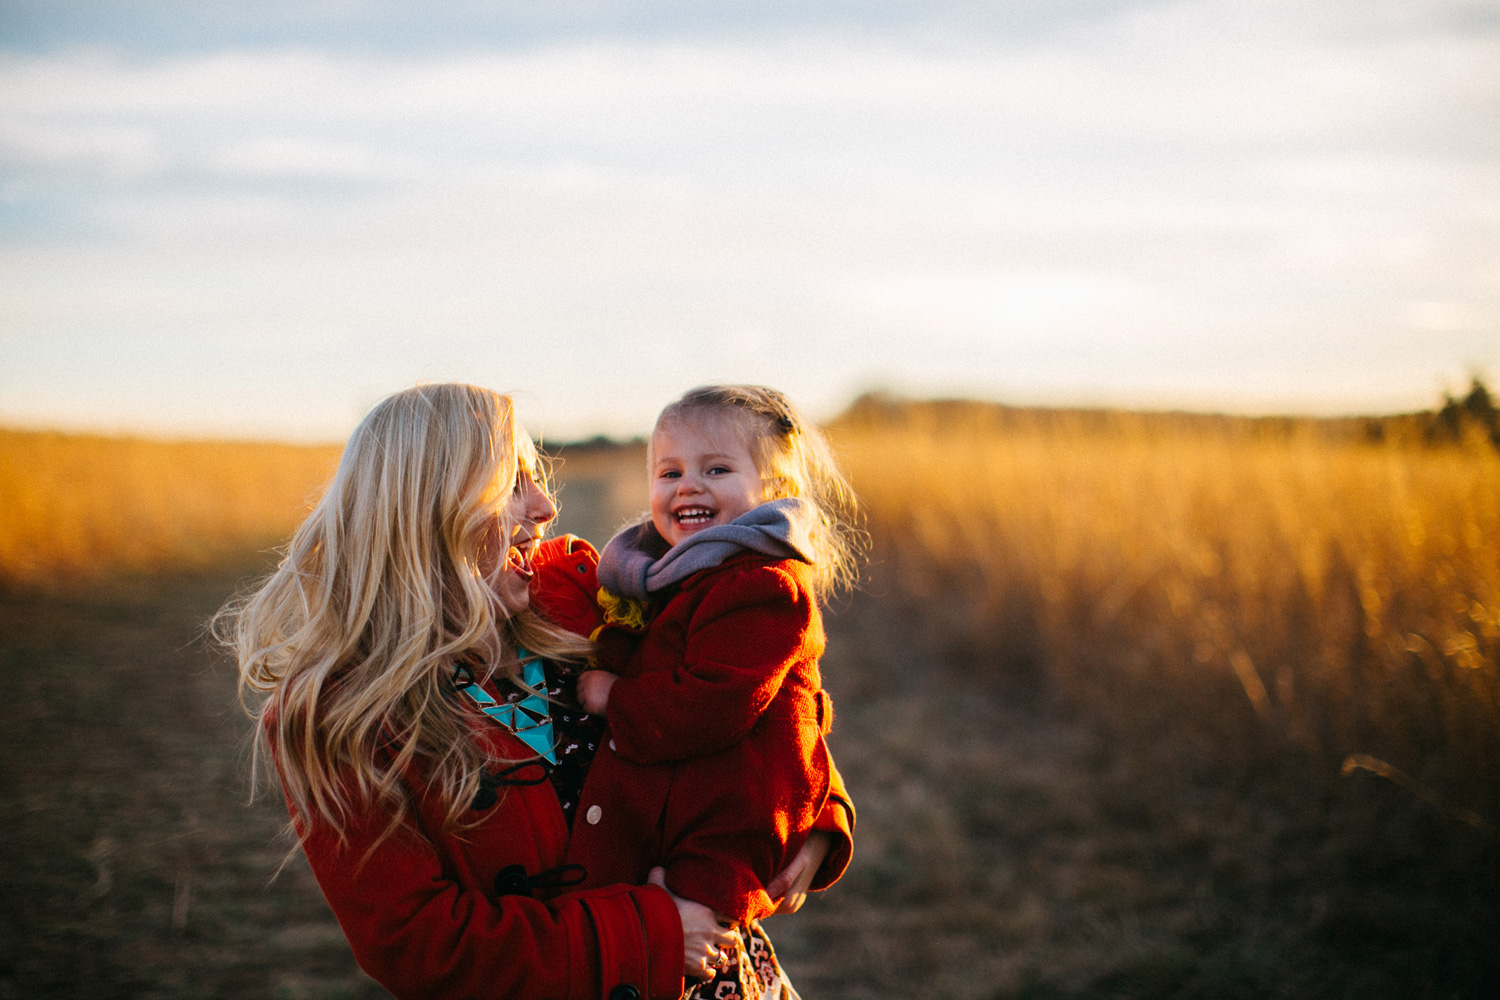 178-family-and-kid-photography-northern-virginia.jpg